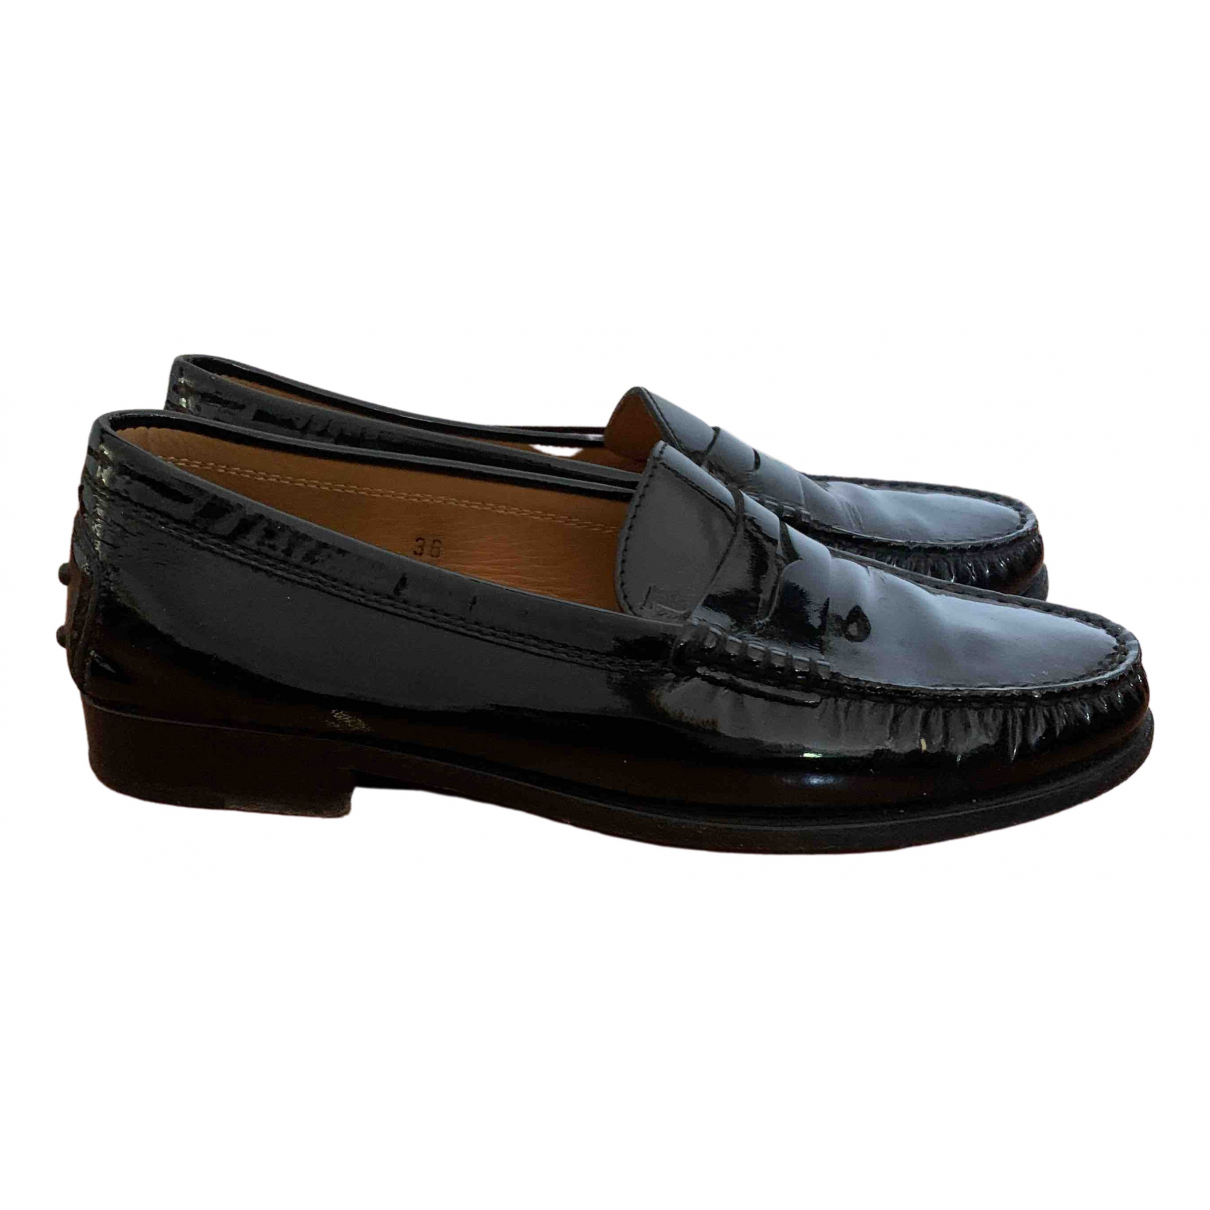 Tod's \N Black Patent leather Flats for Women 36 EU